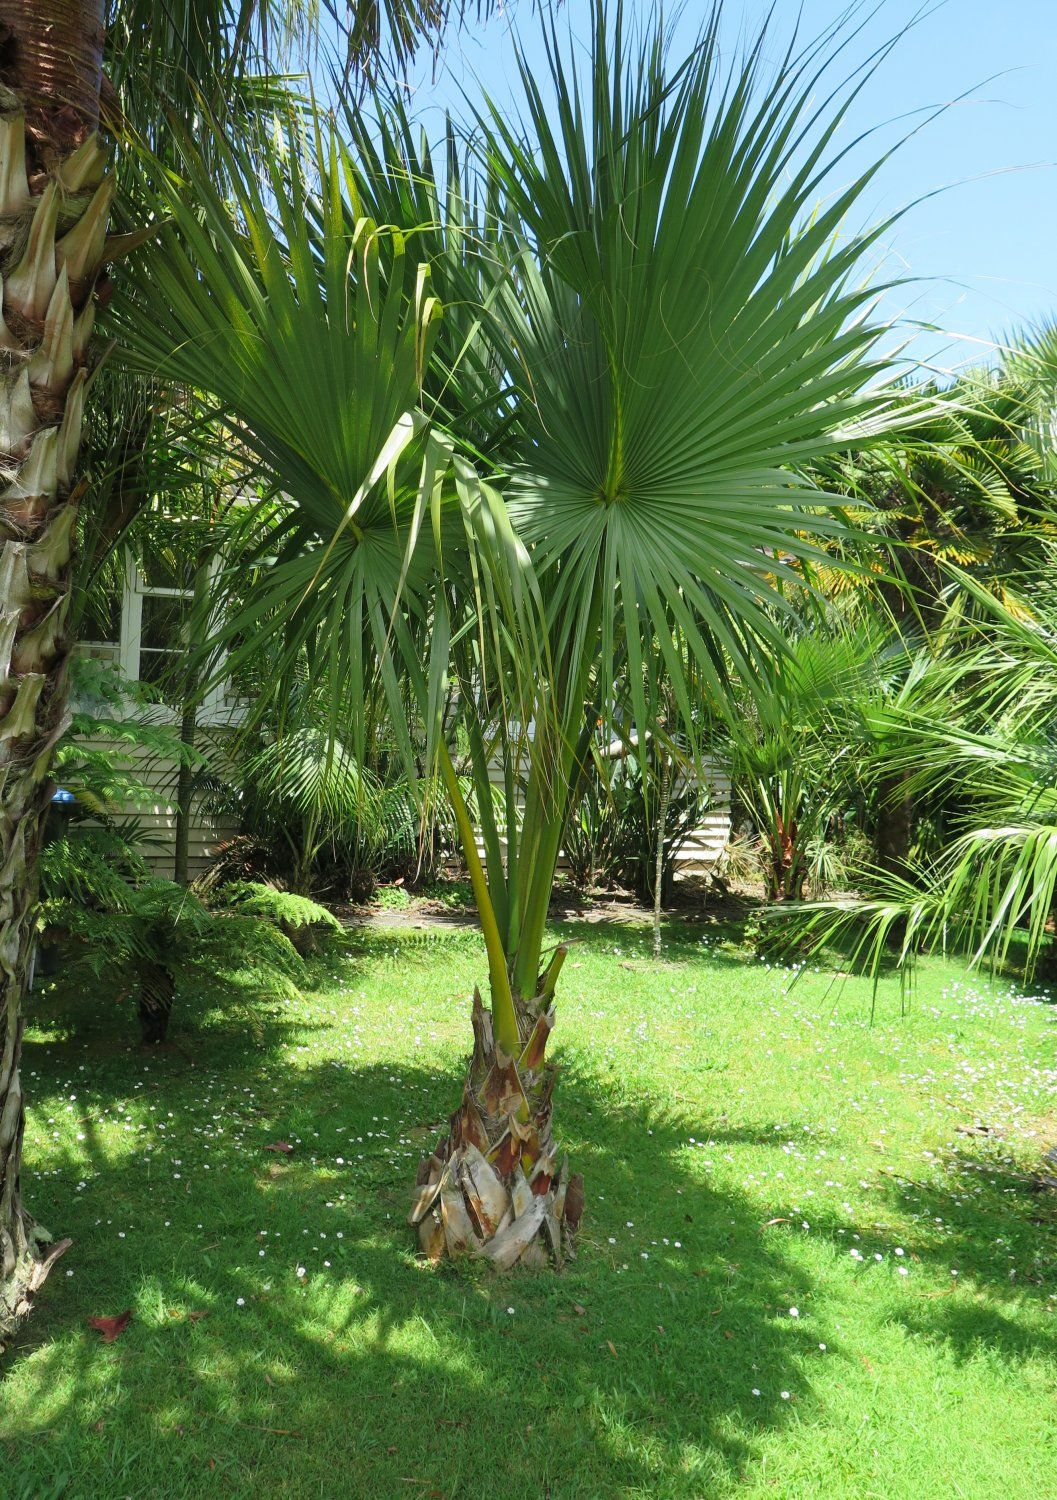 Sabal Minor Commonly Known As The Dwarf Palmetto Or Bush Palmetto